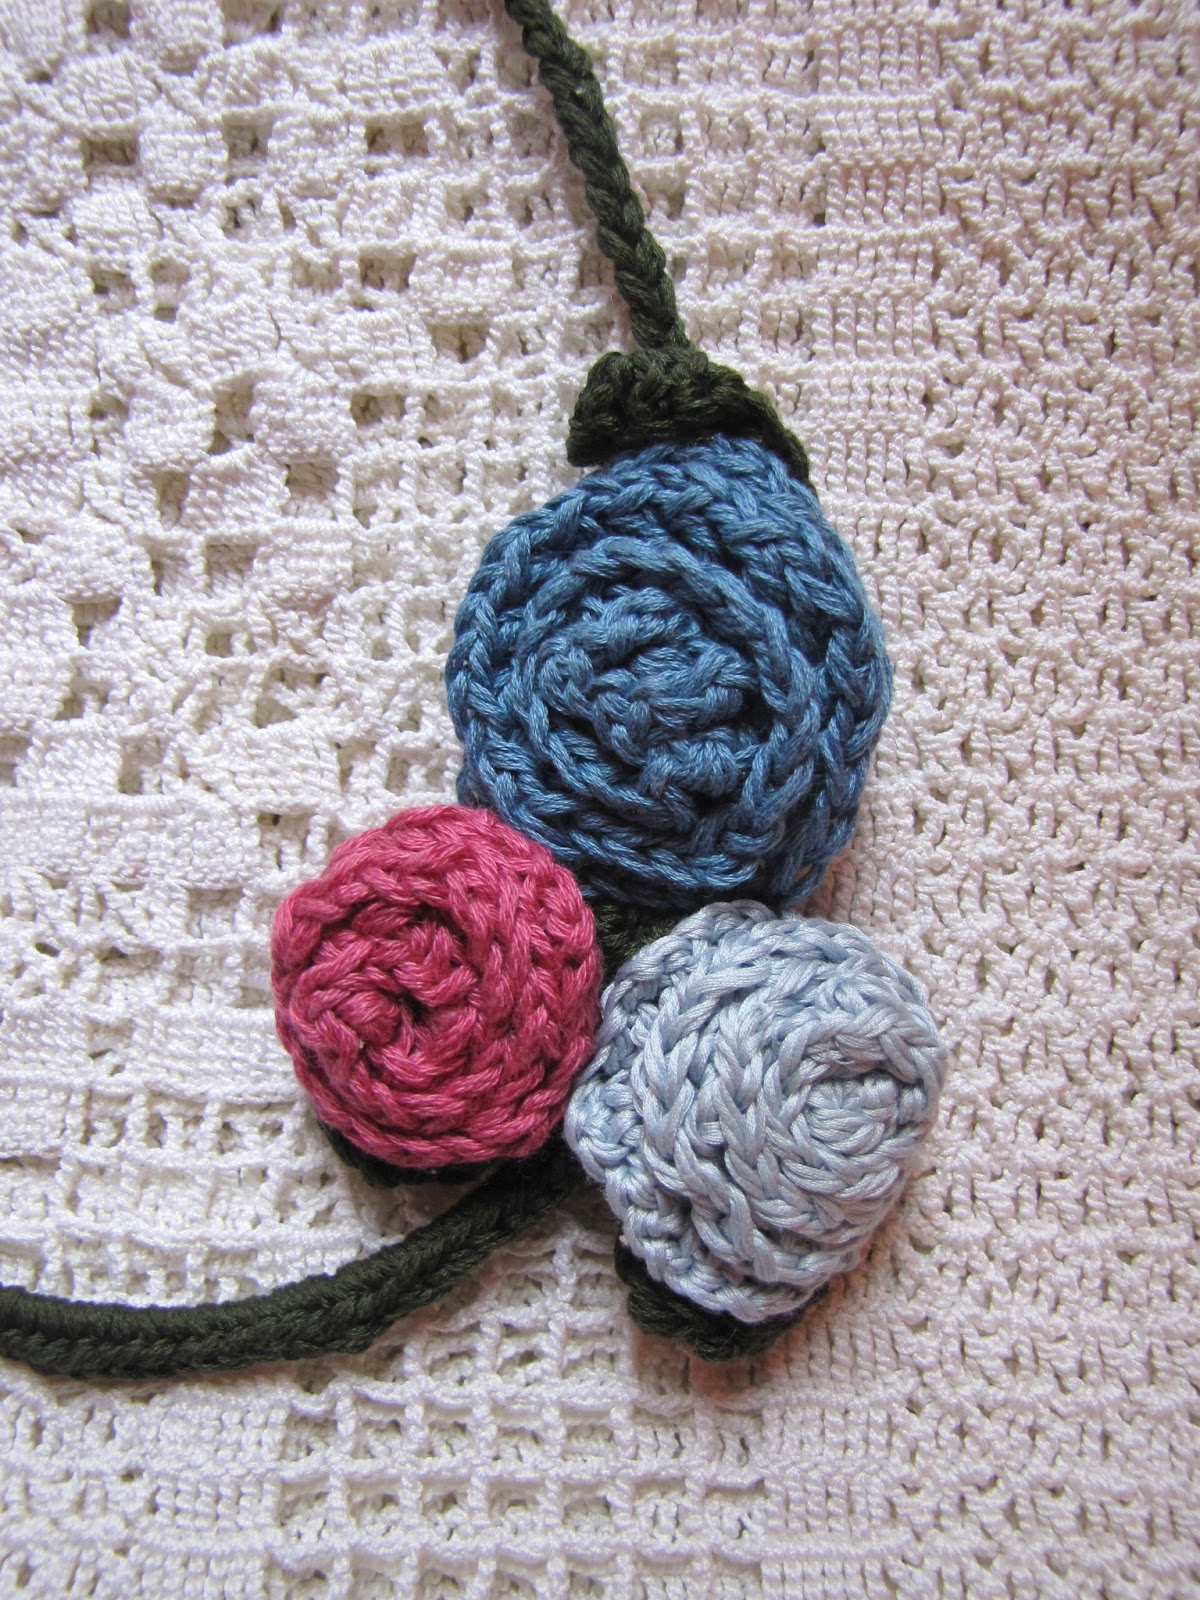 Interweave Crochet : interweave crochet contacted me about unusual crocheted pieces she was ...